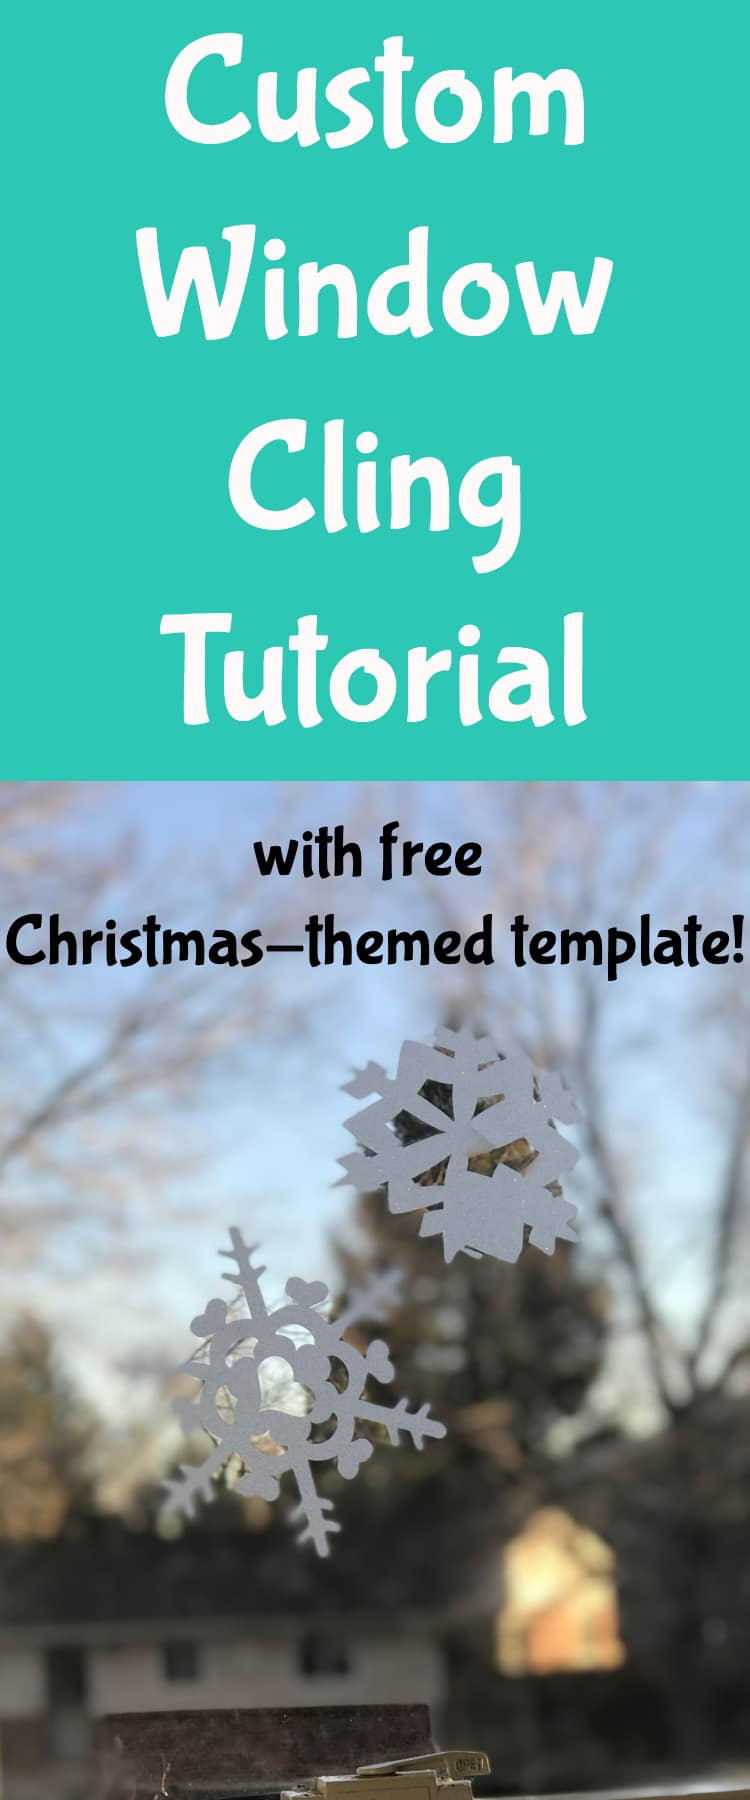 Window Clings / Christmas Window Clings / Snowflake Decoration / Cricut Crafts / Cricut Projects #Cricut #CricutCrafts #CricutProjects #CricutMaker via @clarkscondensed